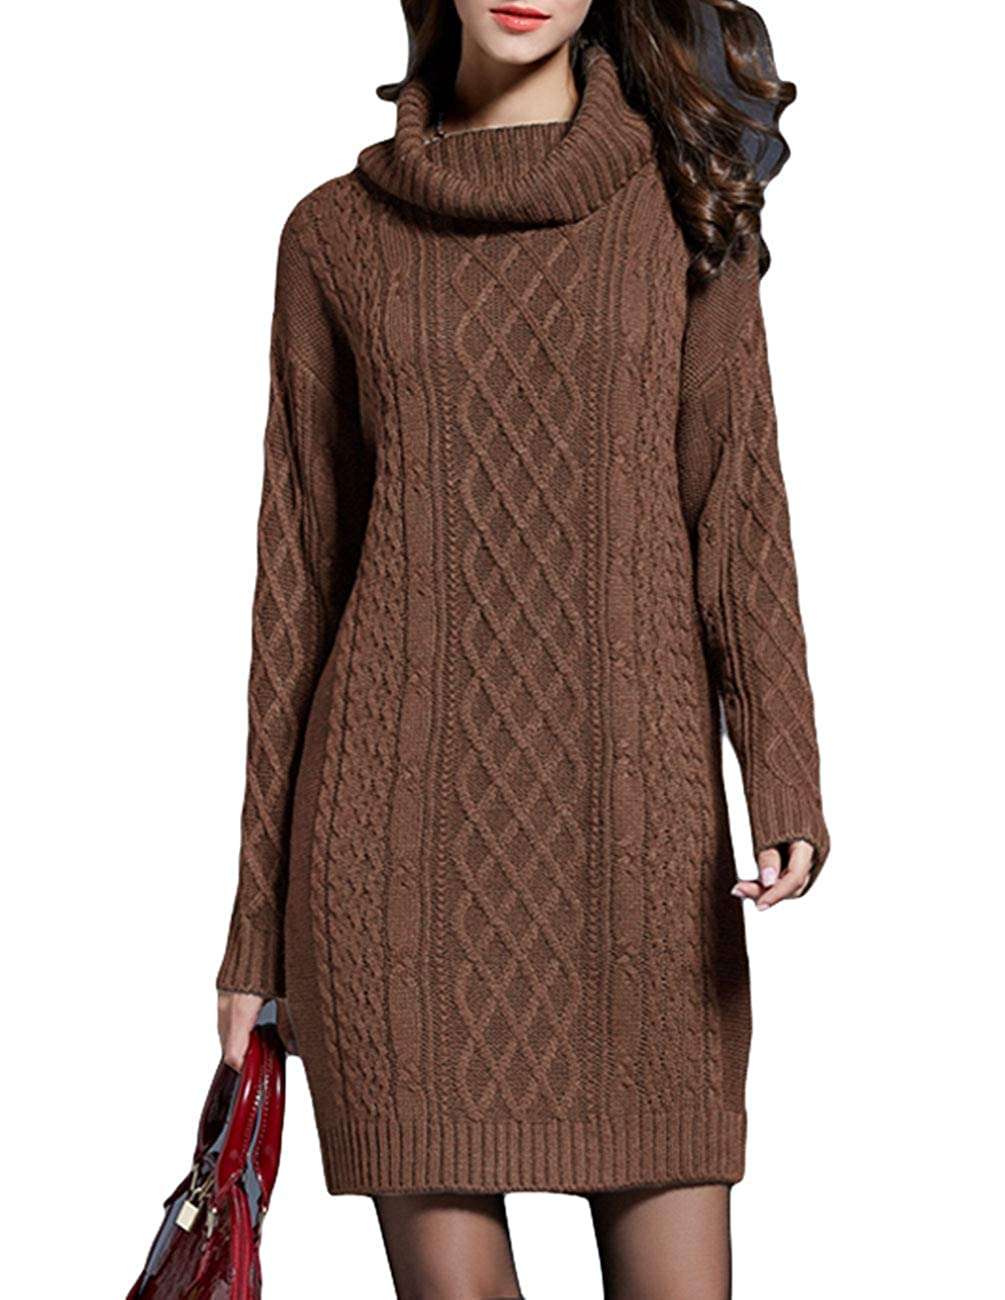 ace441c588 ZENUTA Women s Long Sleeve High Neck Chunky Cable Knit Pullover Sweater  Dress at Amazon Women s Clothing store